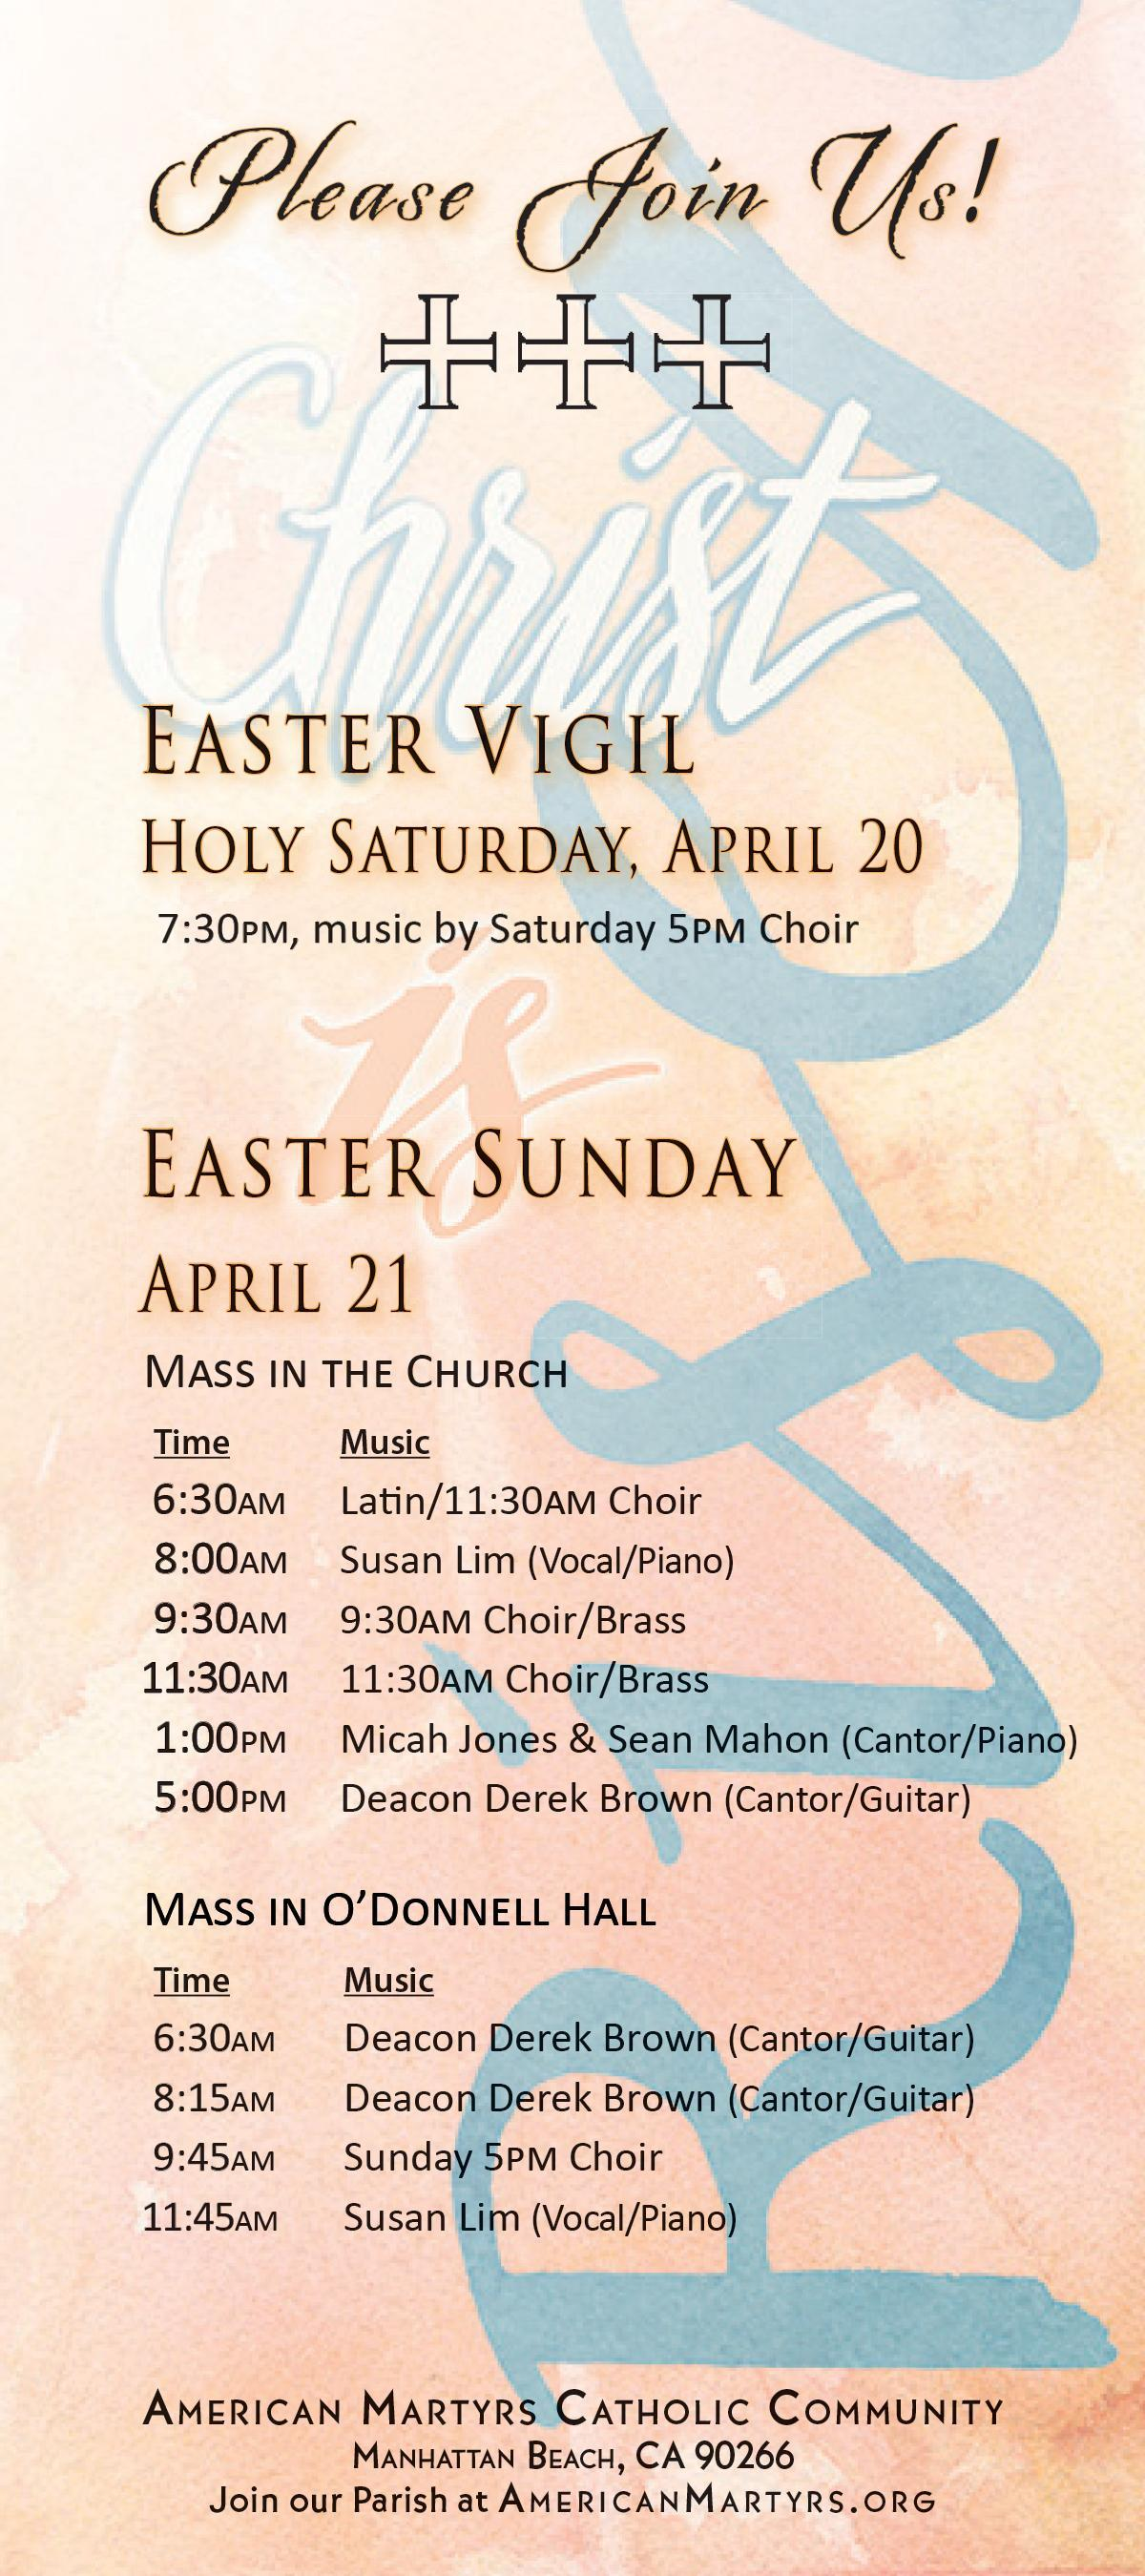 Please join us for our Easter Celebration! Image